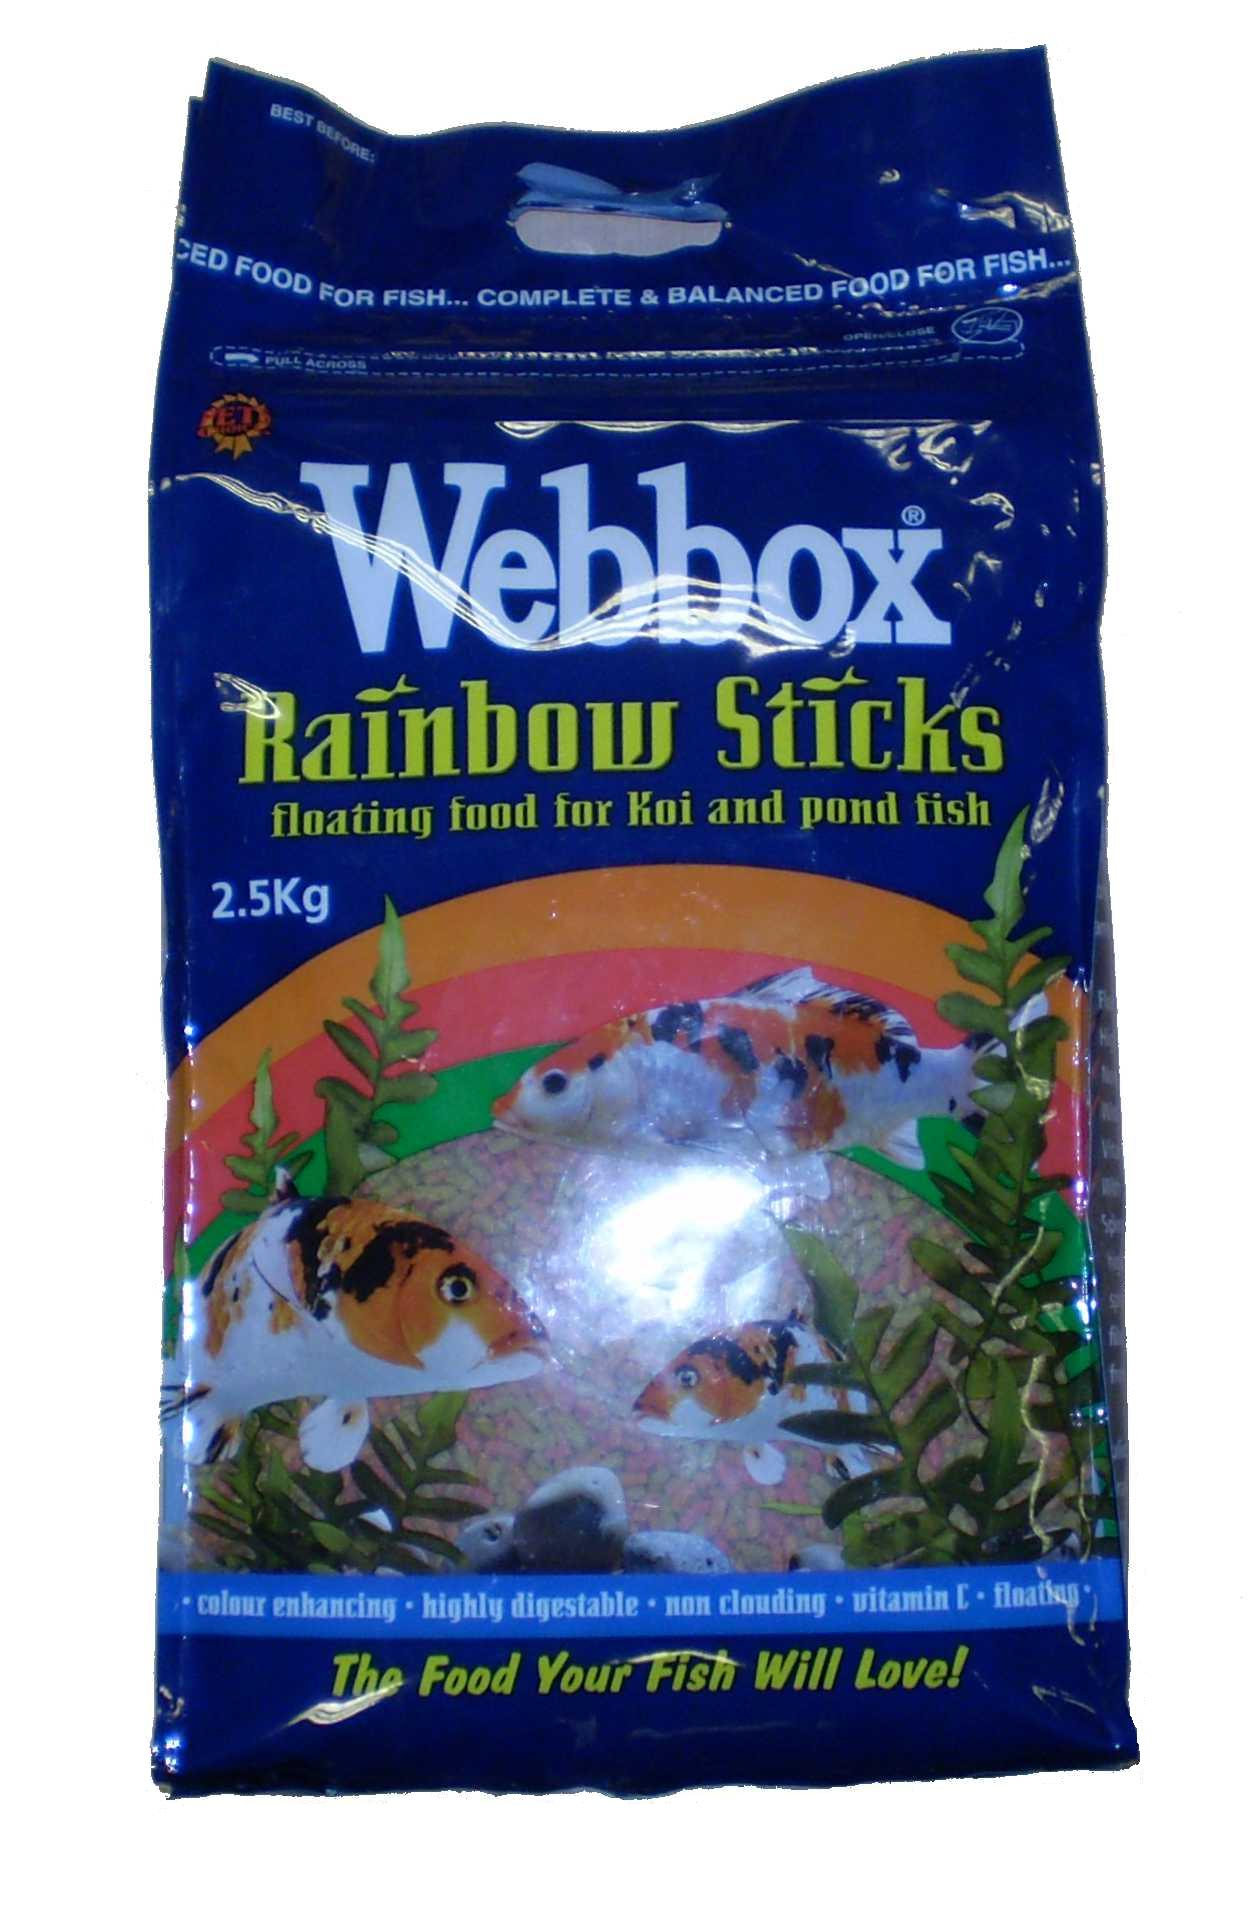 Webbox Rainbow Sticks for Pond Fish